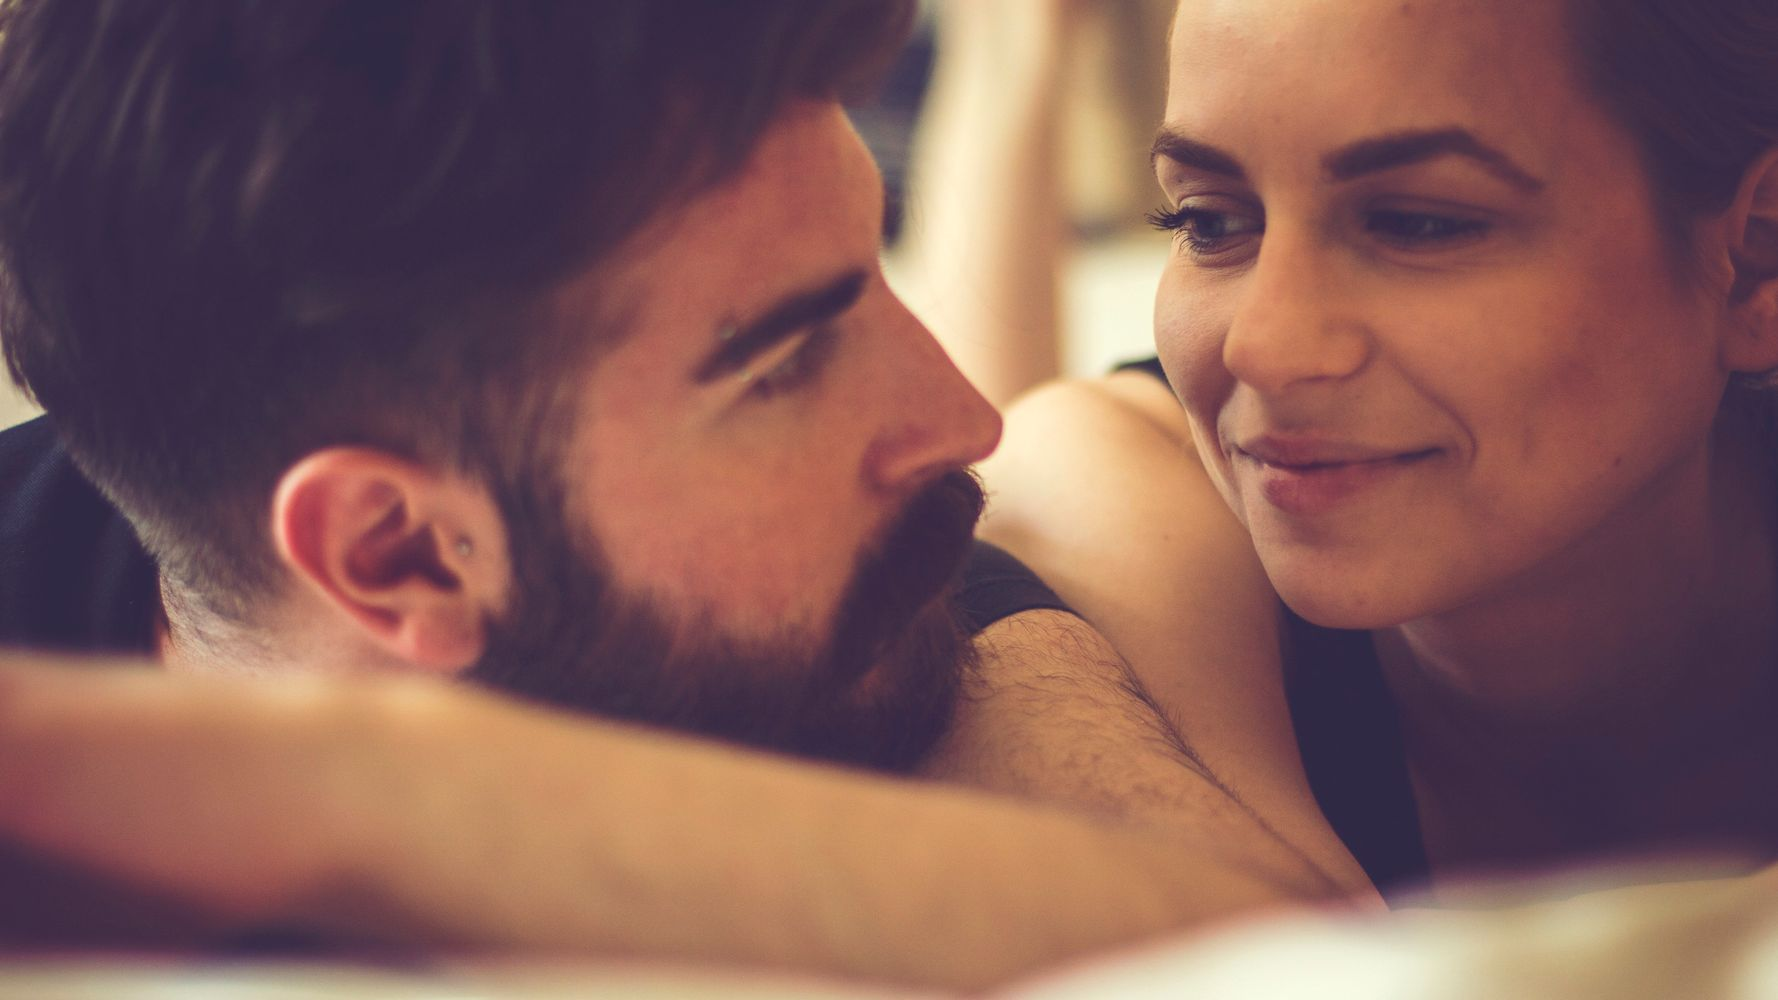 Sex after dating for 2 months